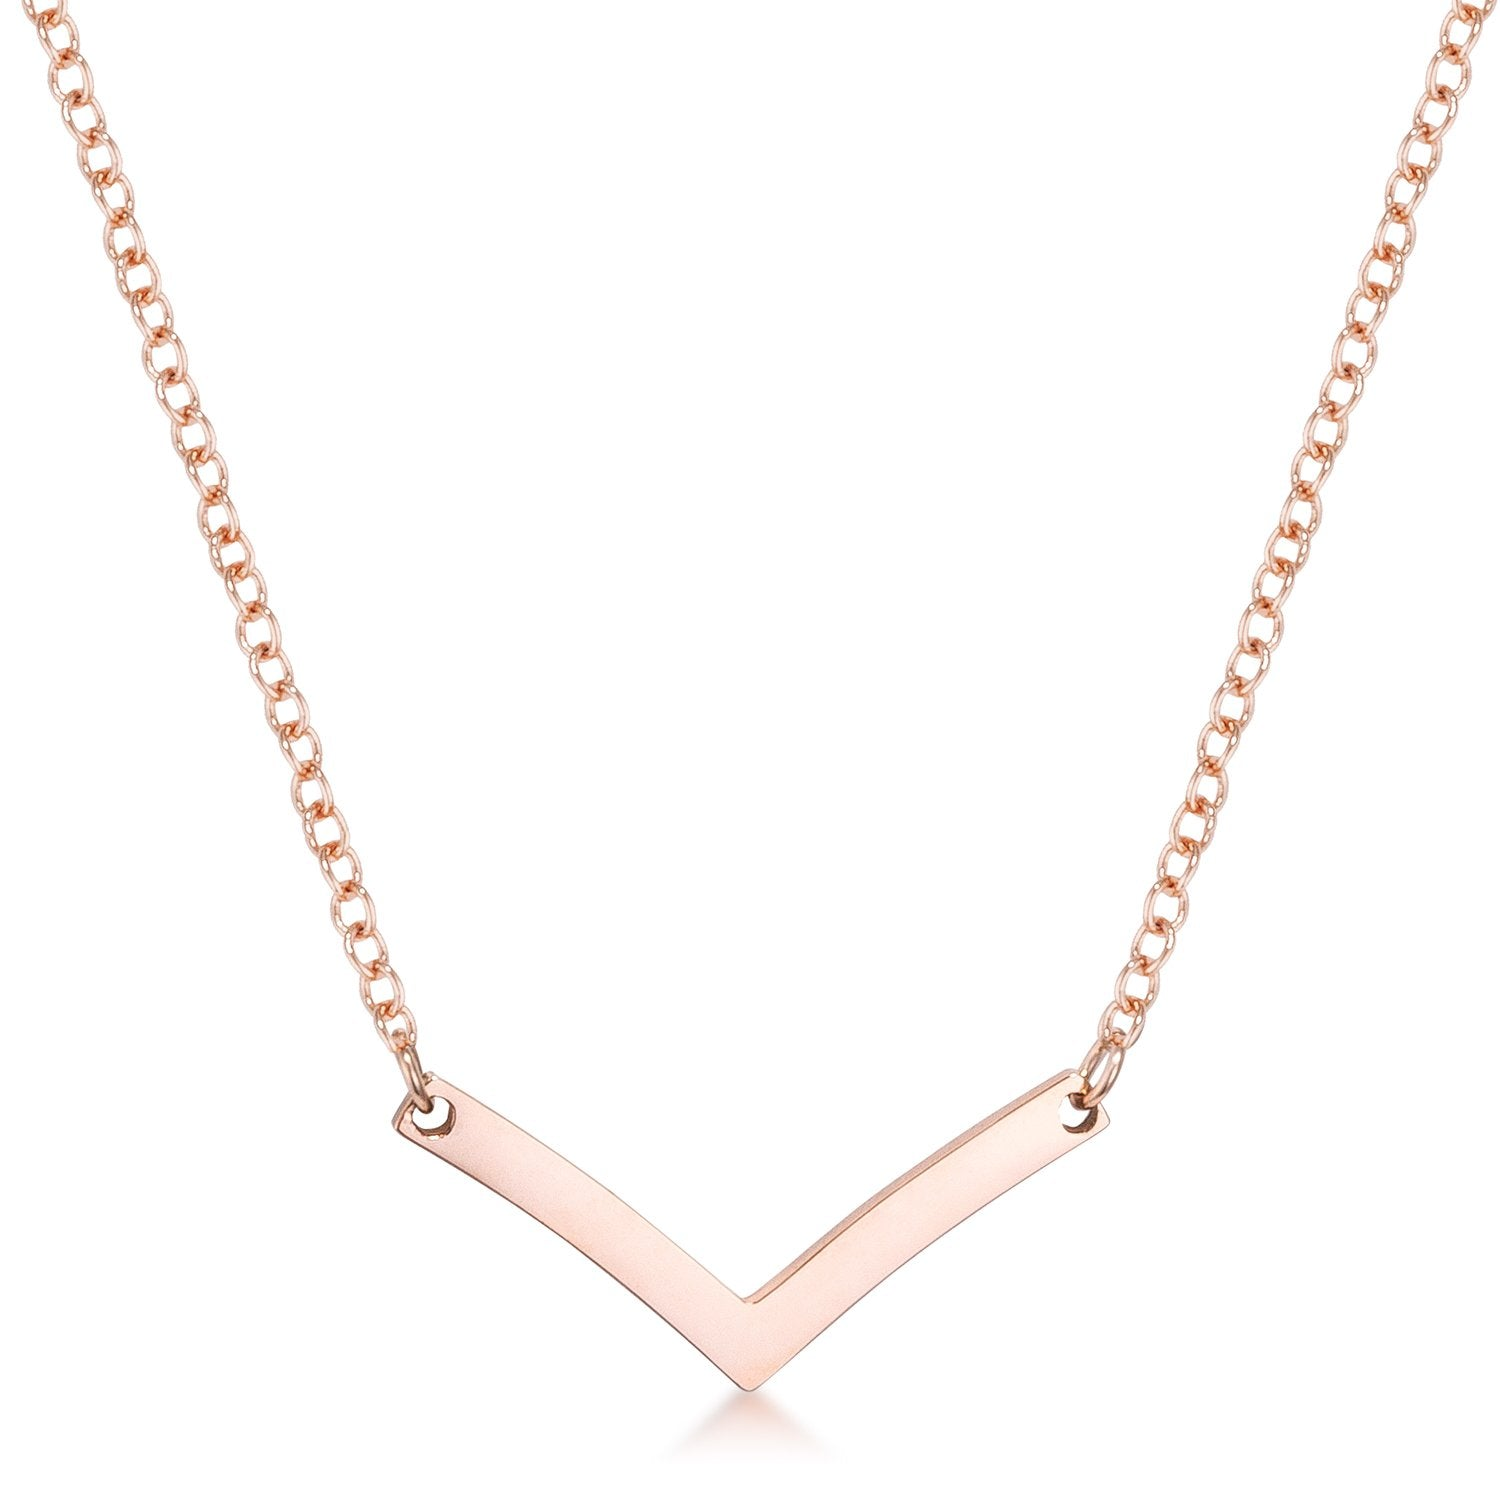 Stainless Steel Rose Goldtone Chevron Necklace - N01338AV-V00